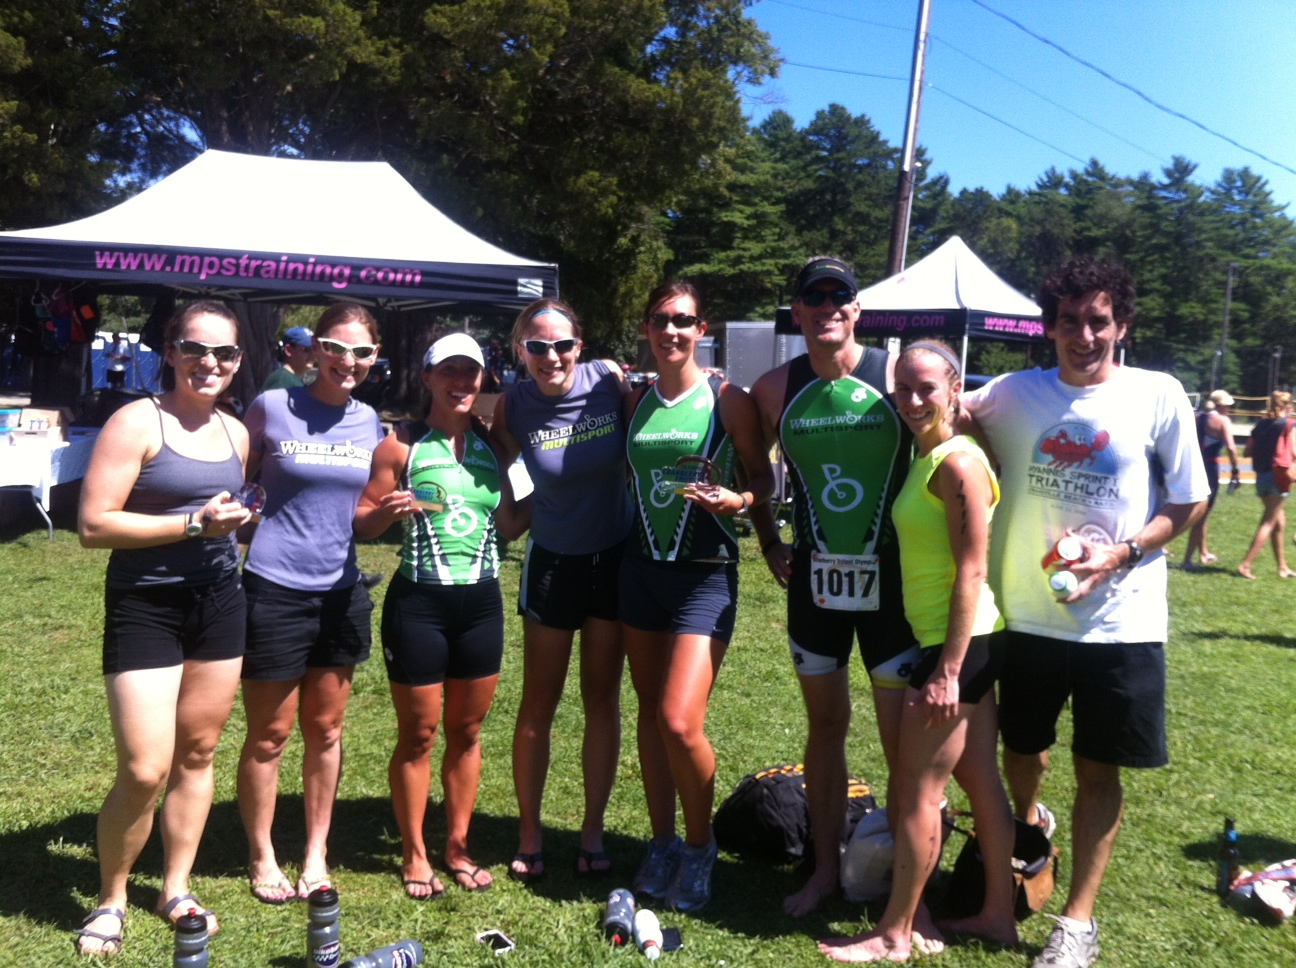 Celebrating victories at the Cranberry Triathlon in MA